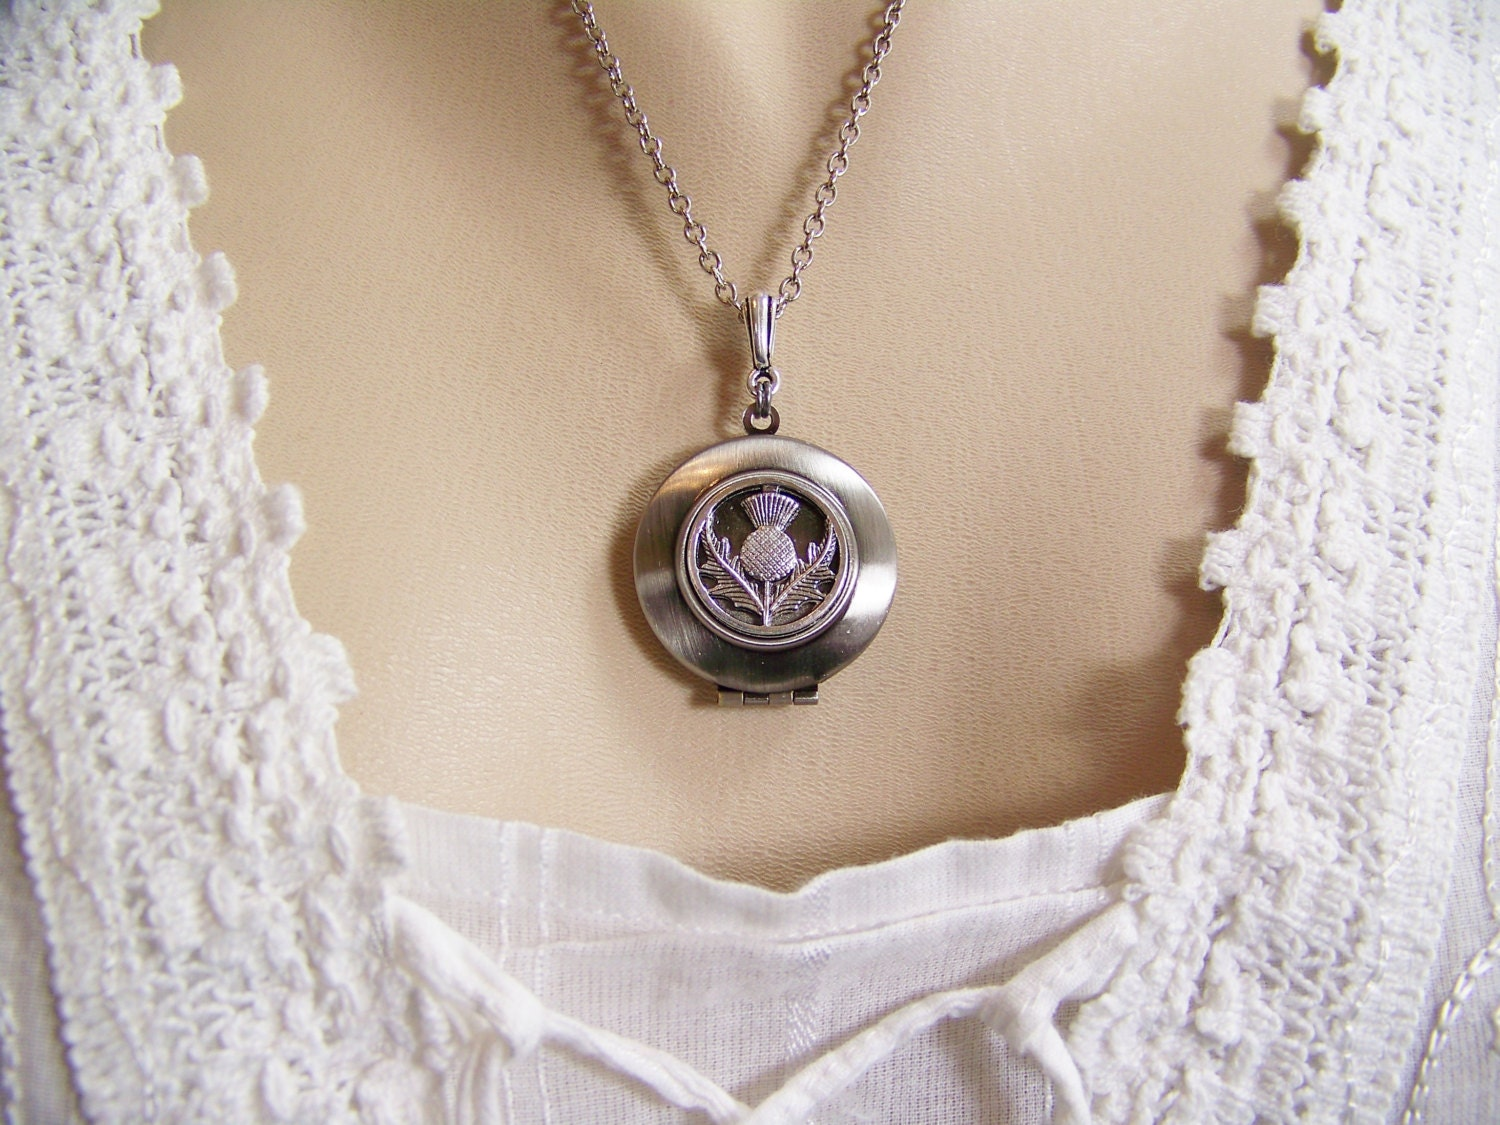 patricks s handmade lockets jewelry style for celtic st lovely patrick day pieces